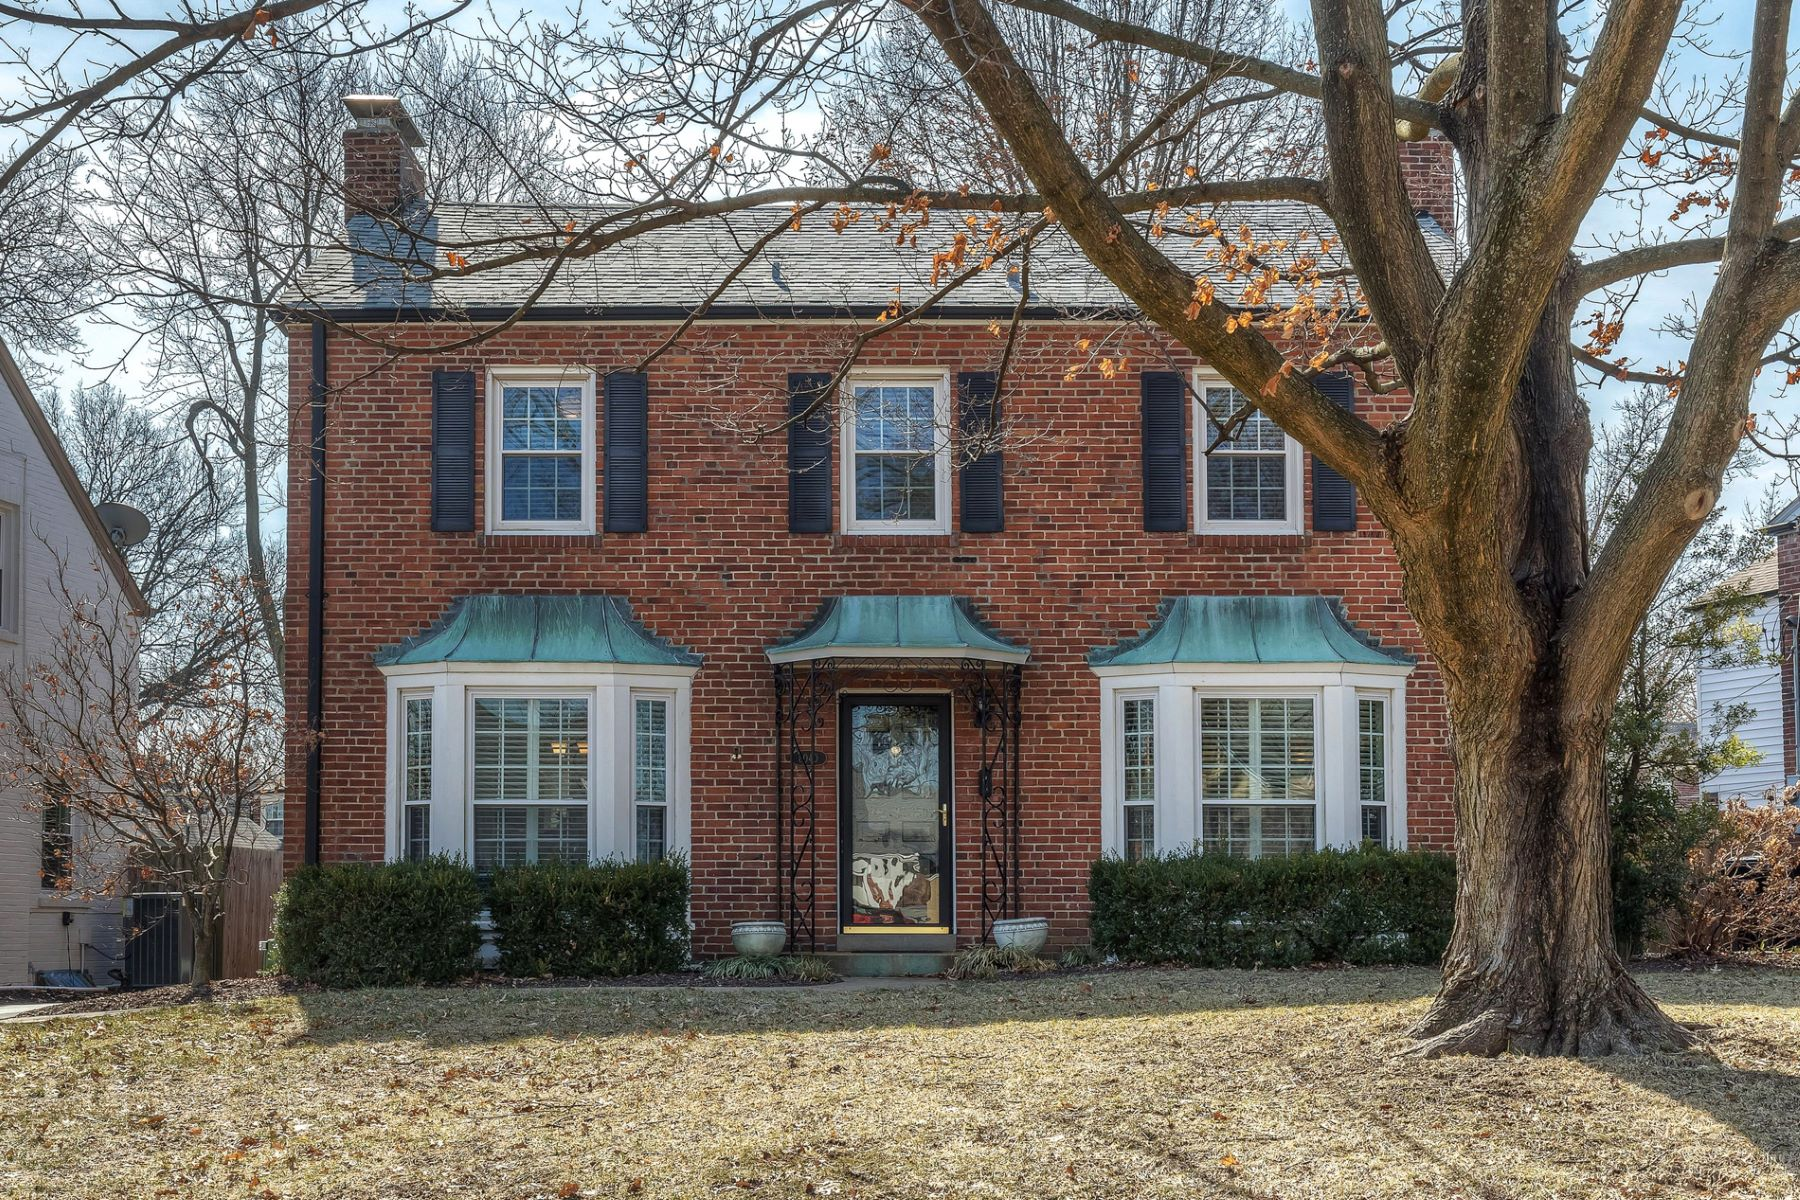 Property for Sale at Teasdale Ave 8040 Teasdale Ave University City, Missouri 63130 United States